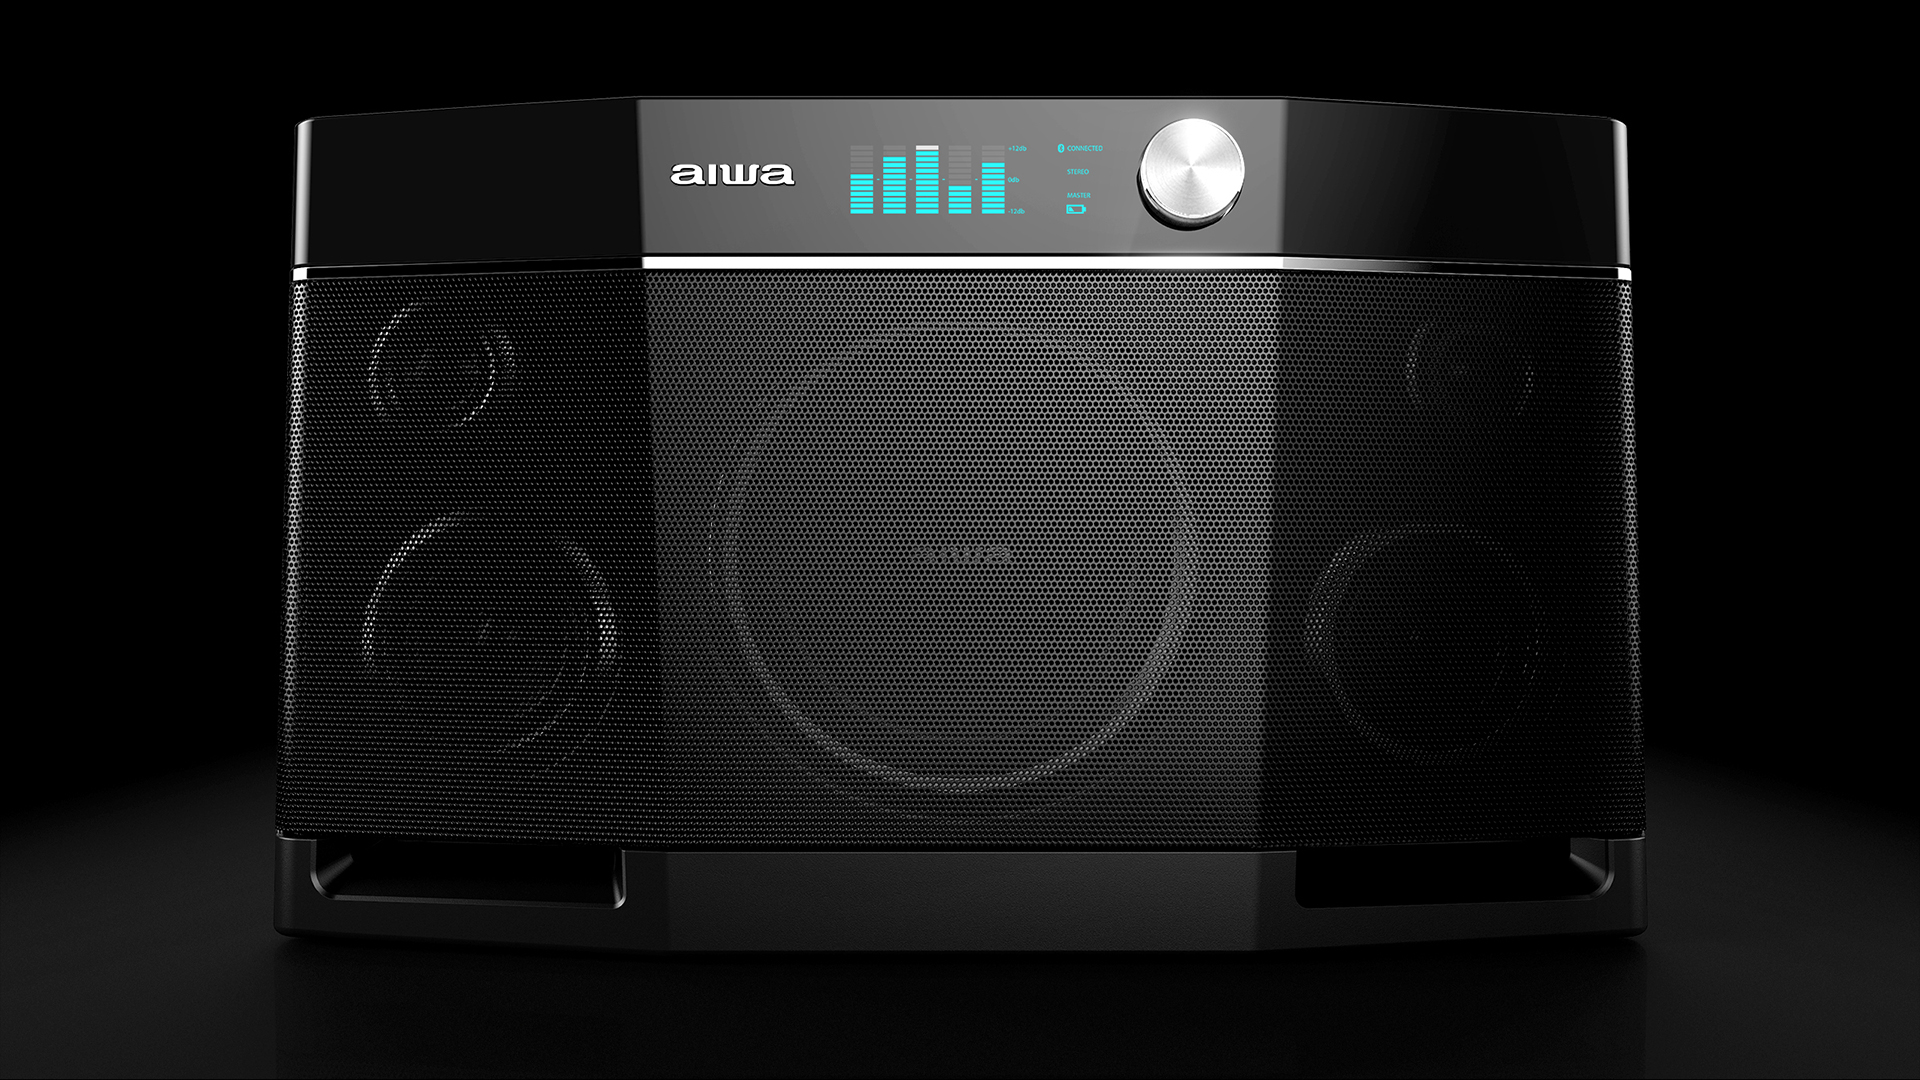 aiwa_industrial_product_design_process_032